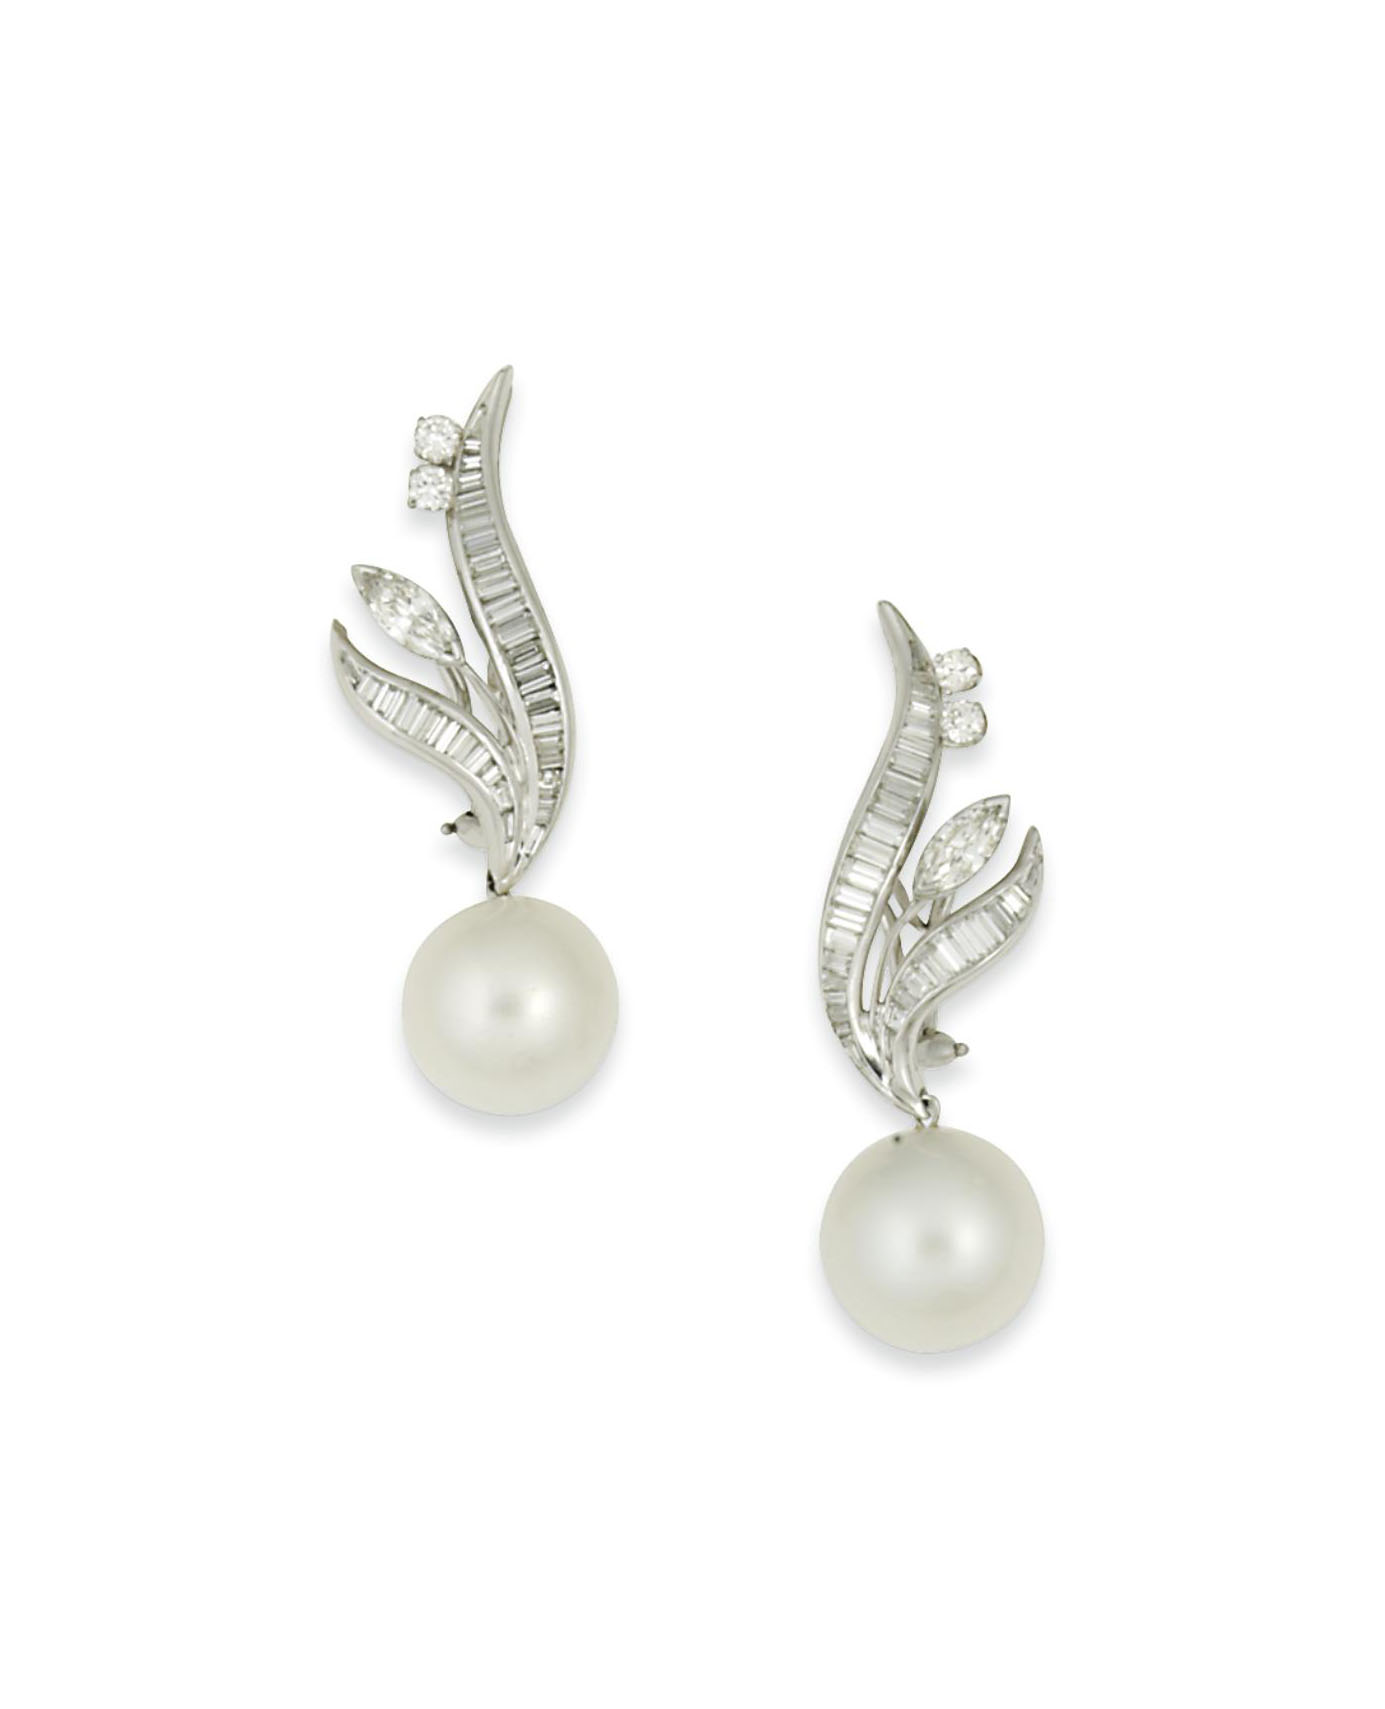 A pair of cultured pearl and d